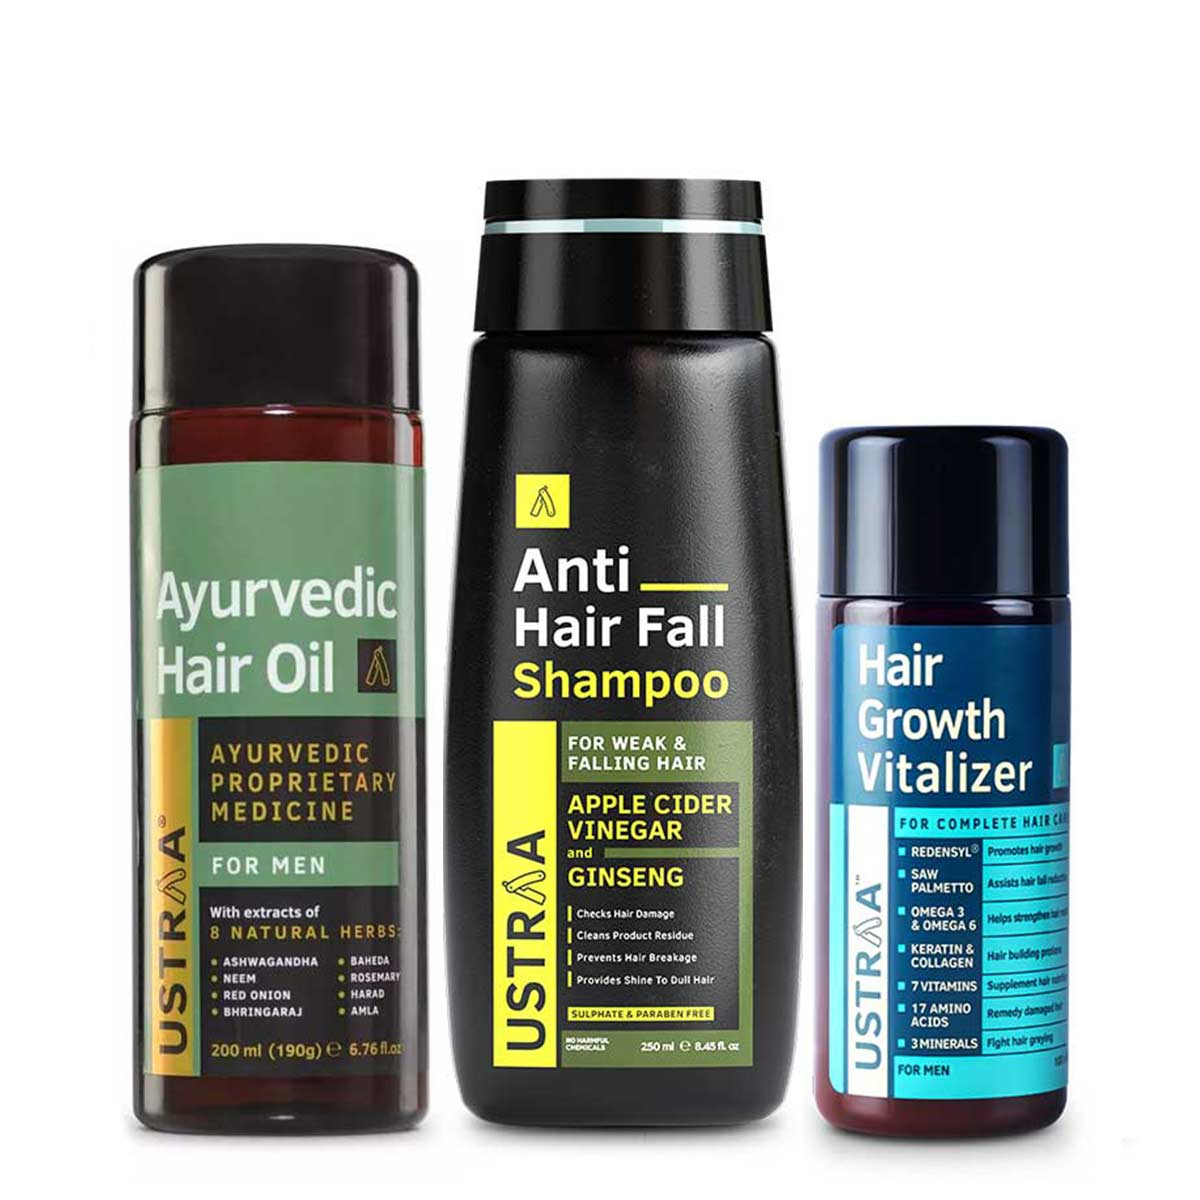 Ustraa Complete Hair Growth & Protection Kit For Men (Set of 3): Hair Growth Vitalizer, Anti Hair Fall Shampoo, and Ayurvedic Hair Oil